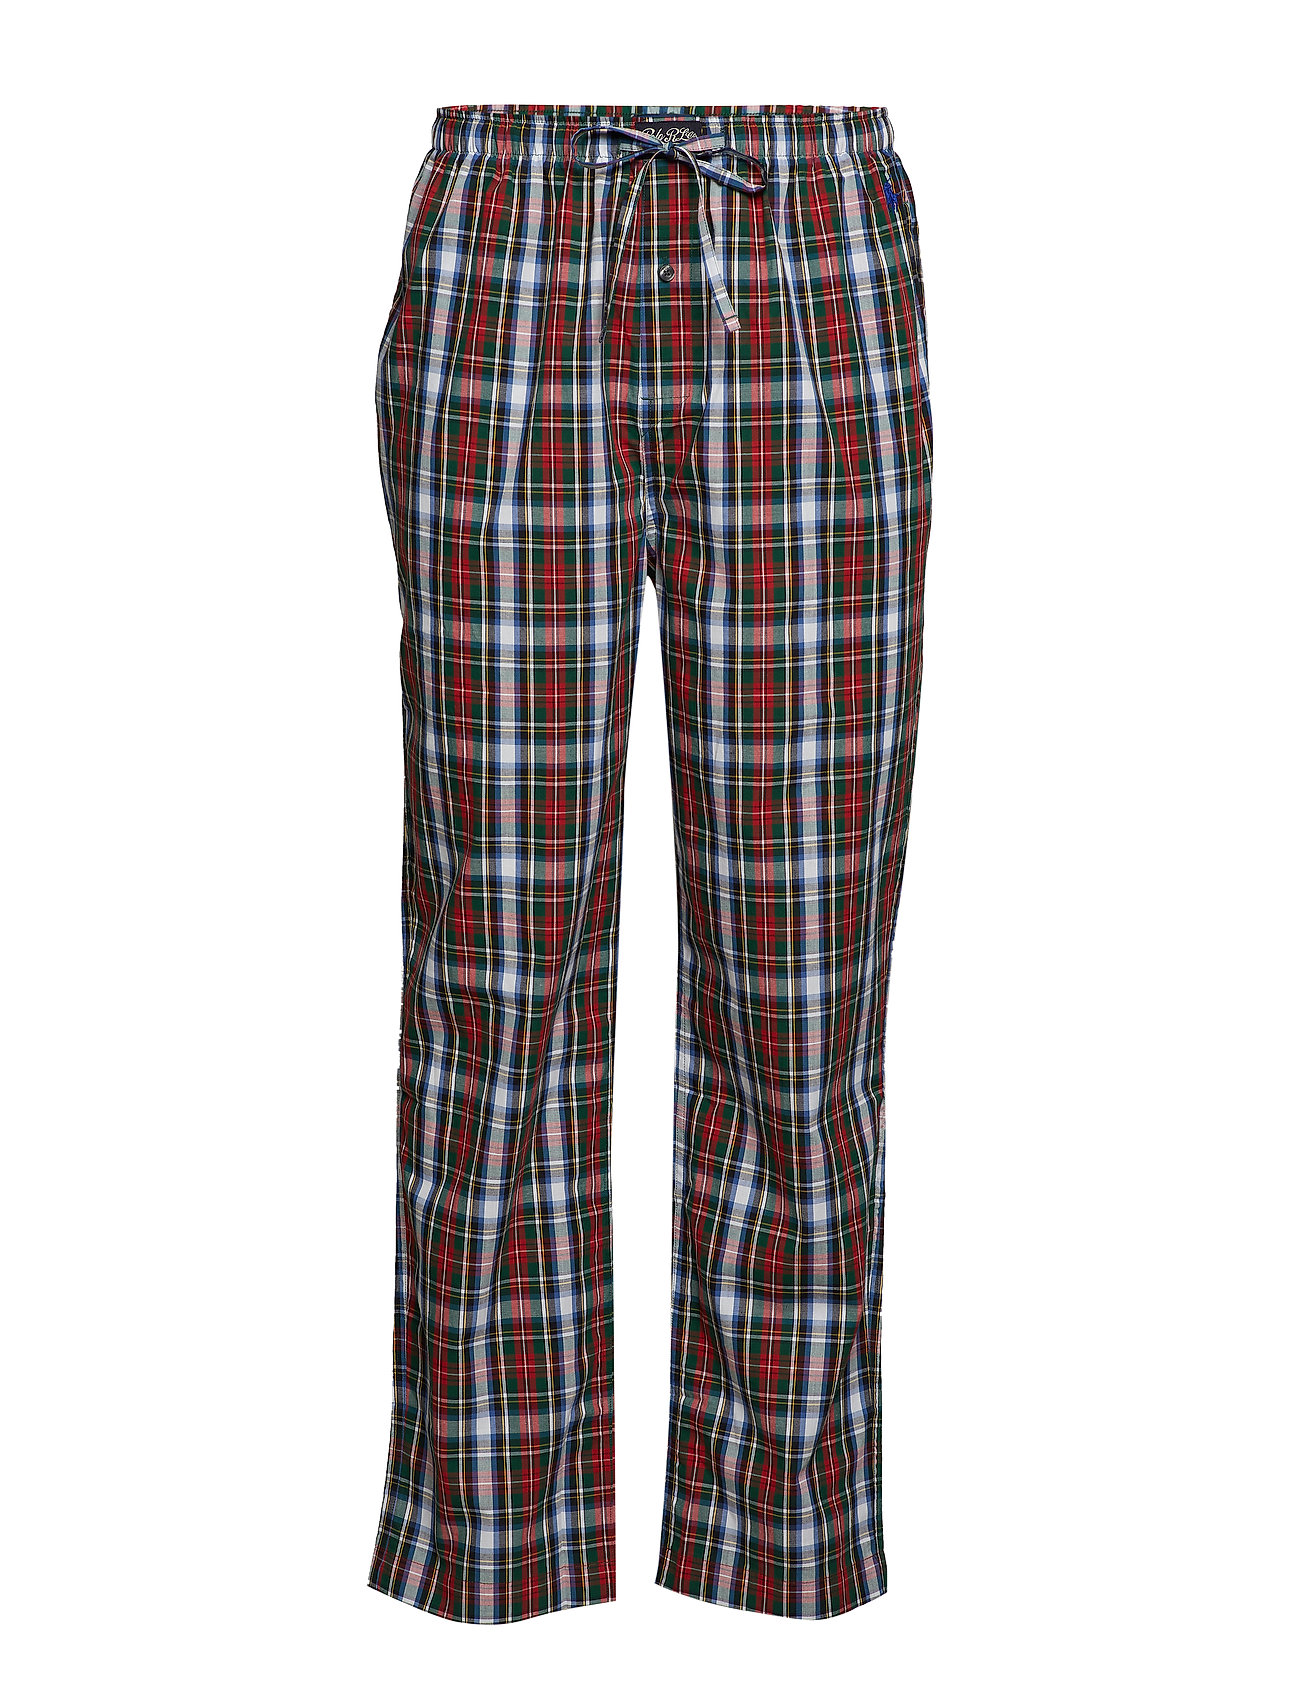 Polo Ralph Lauren Underwear Cotton Sleep Pant - WILLIAM PLAID